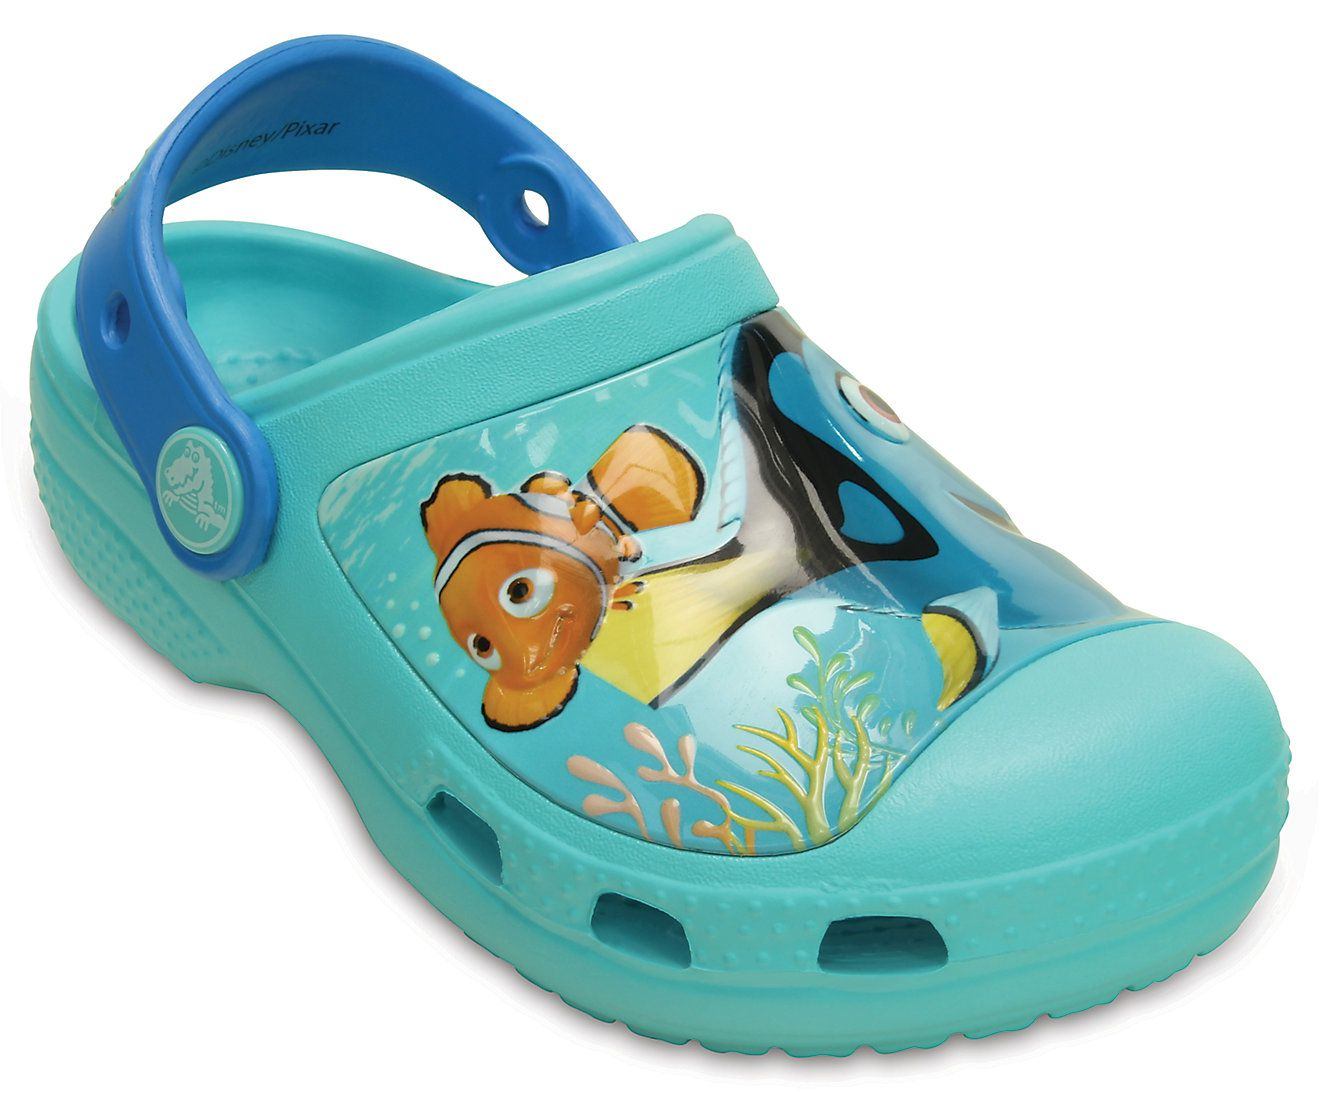 d5f01b457 Crocs CC Finding Dory Blue Kids Clog Price in India- Buy Crocs CC Finding  Dory Blue Kids Clog Online at Snapdeal